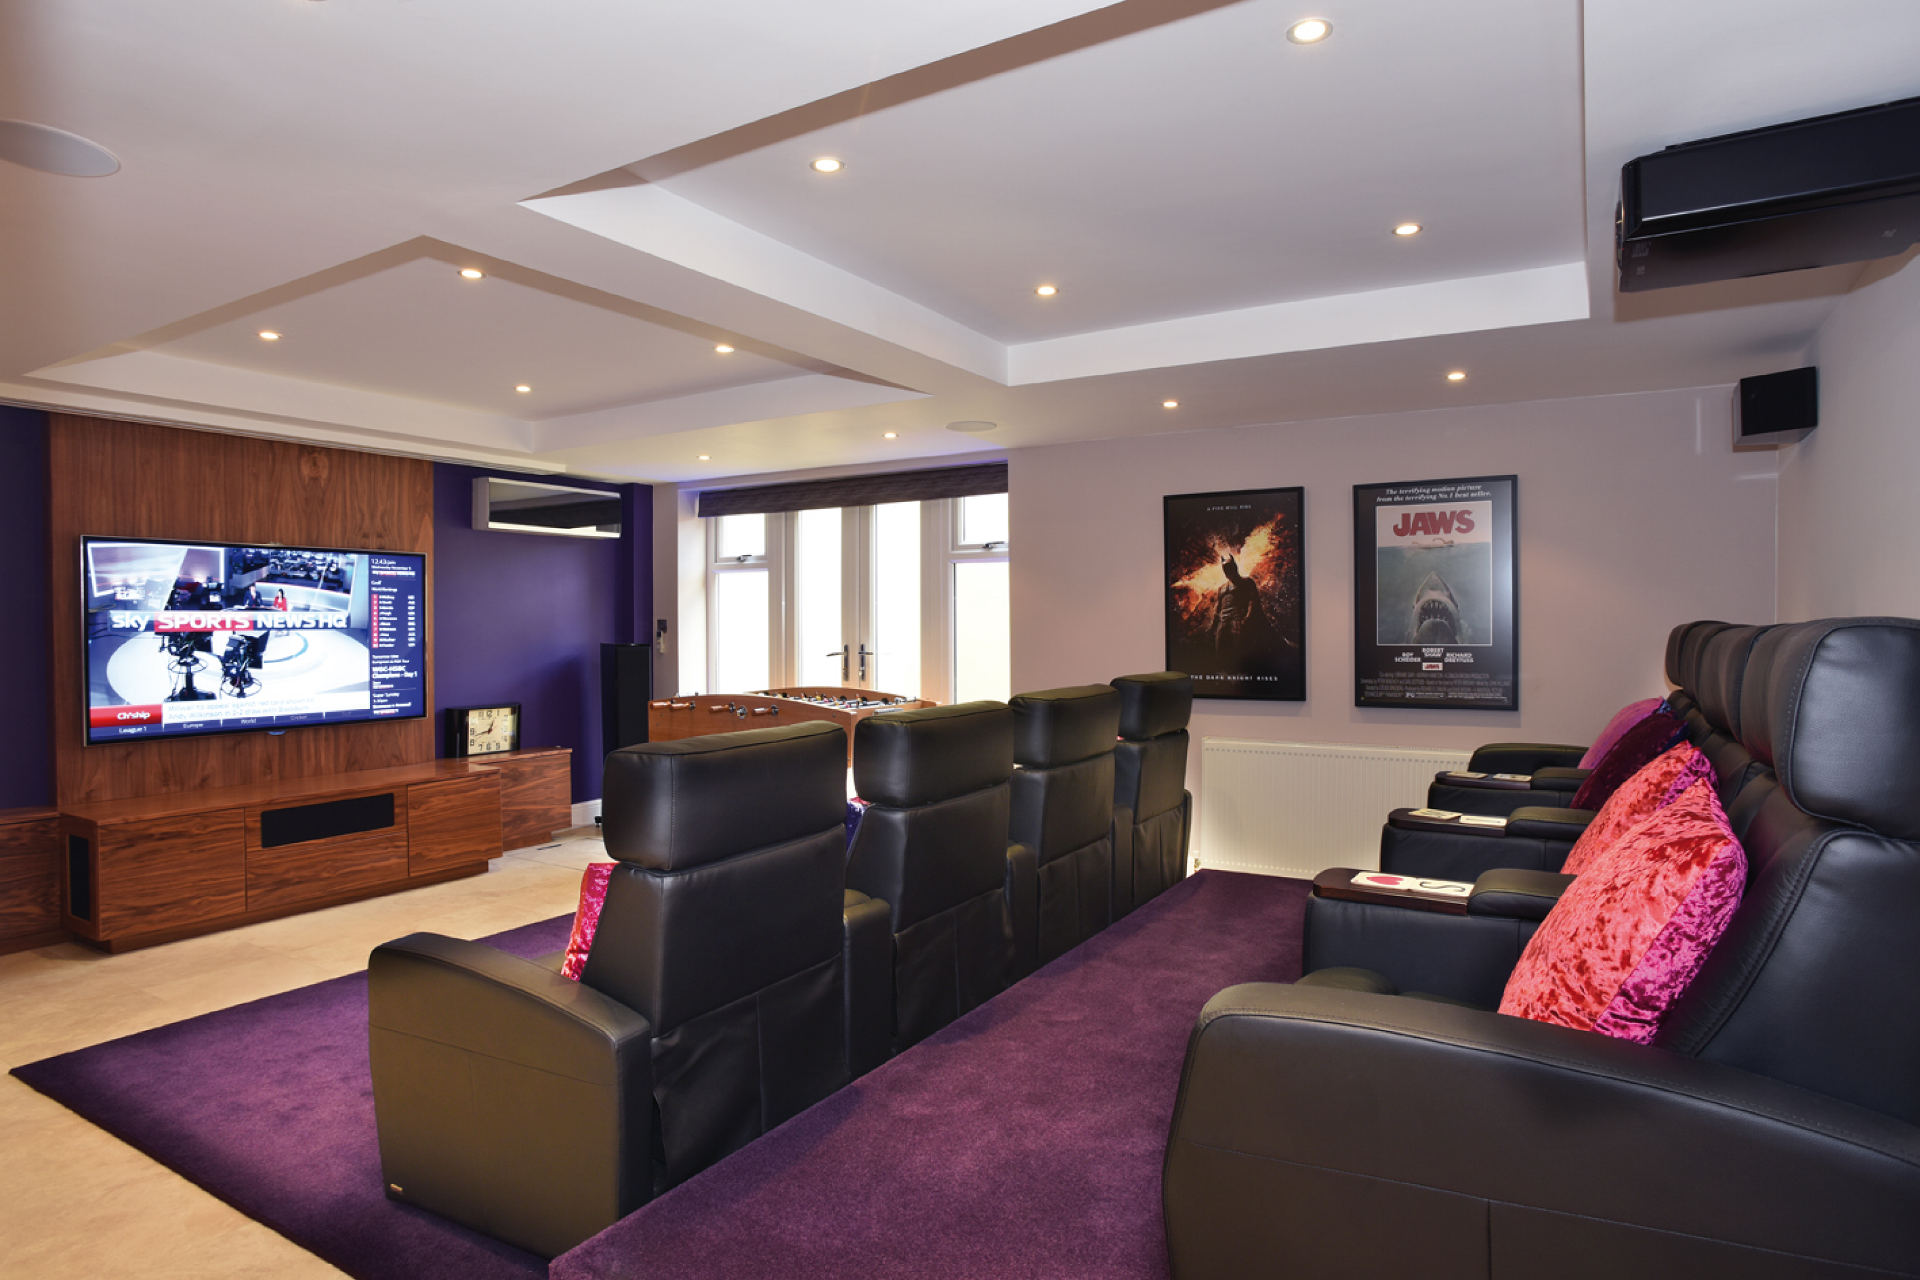 Home Cinema Designs Furniture 28 Images Home Cinema Designs Furniture Home Design Library